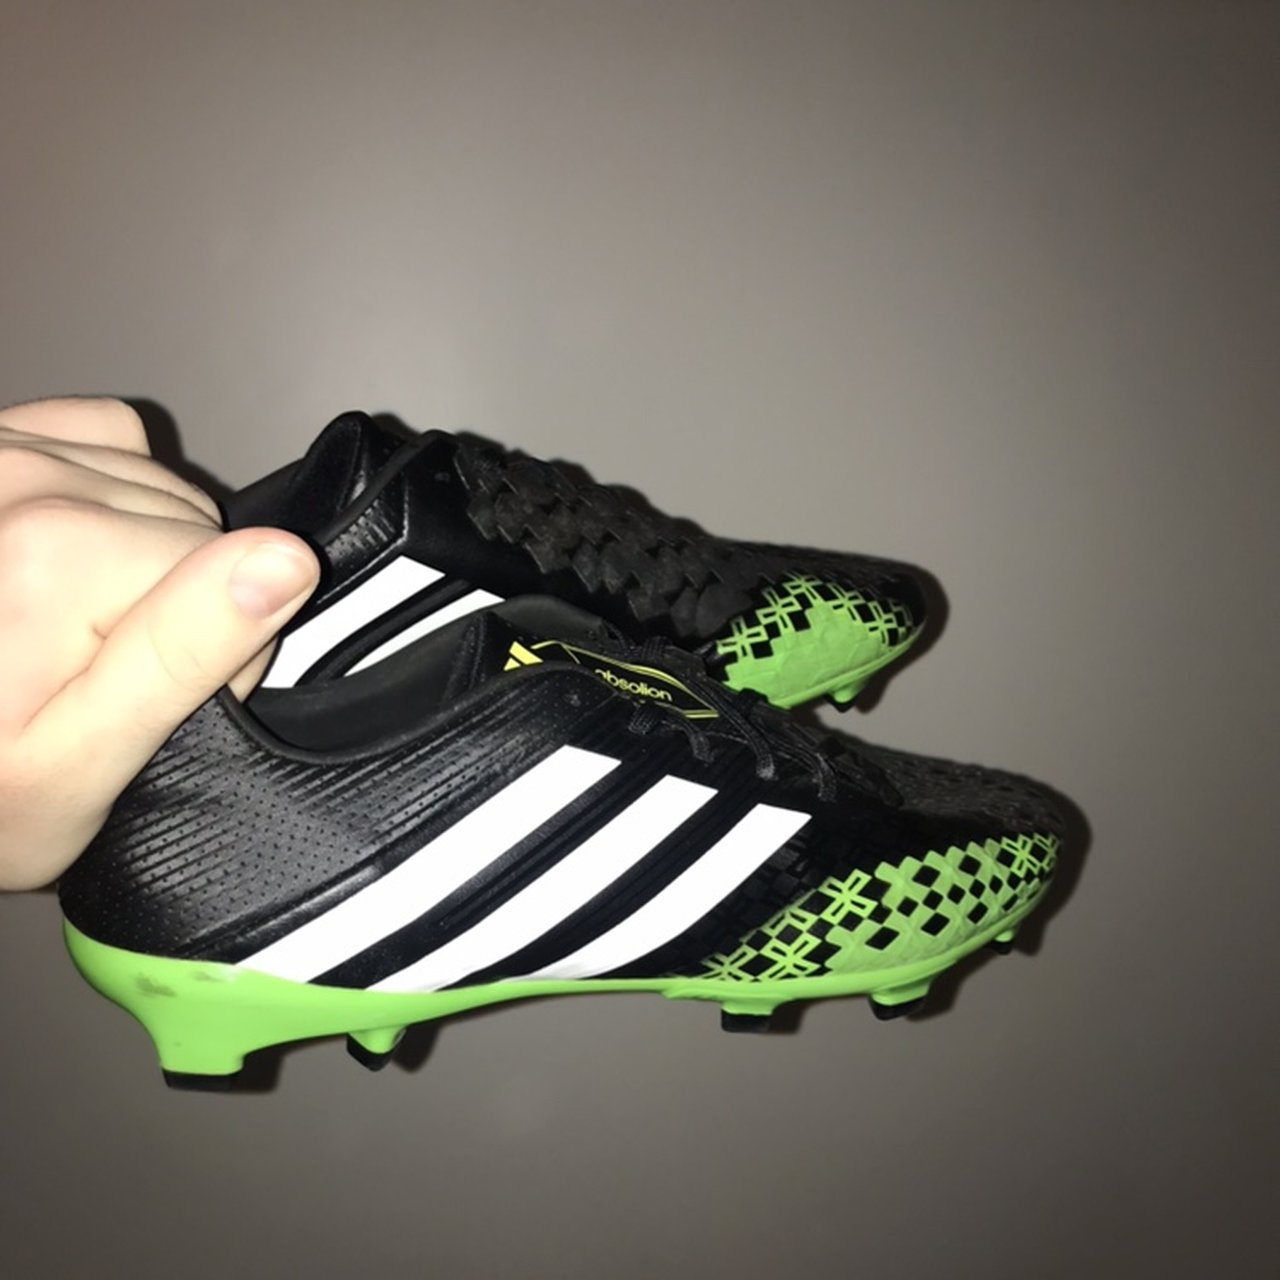 hot sale online 737a9 93d79 ... shoes red kids 1246 9bb69 20007  new zealand adidas predator absolion  bought from ebay 0 d8fcb 23144